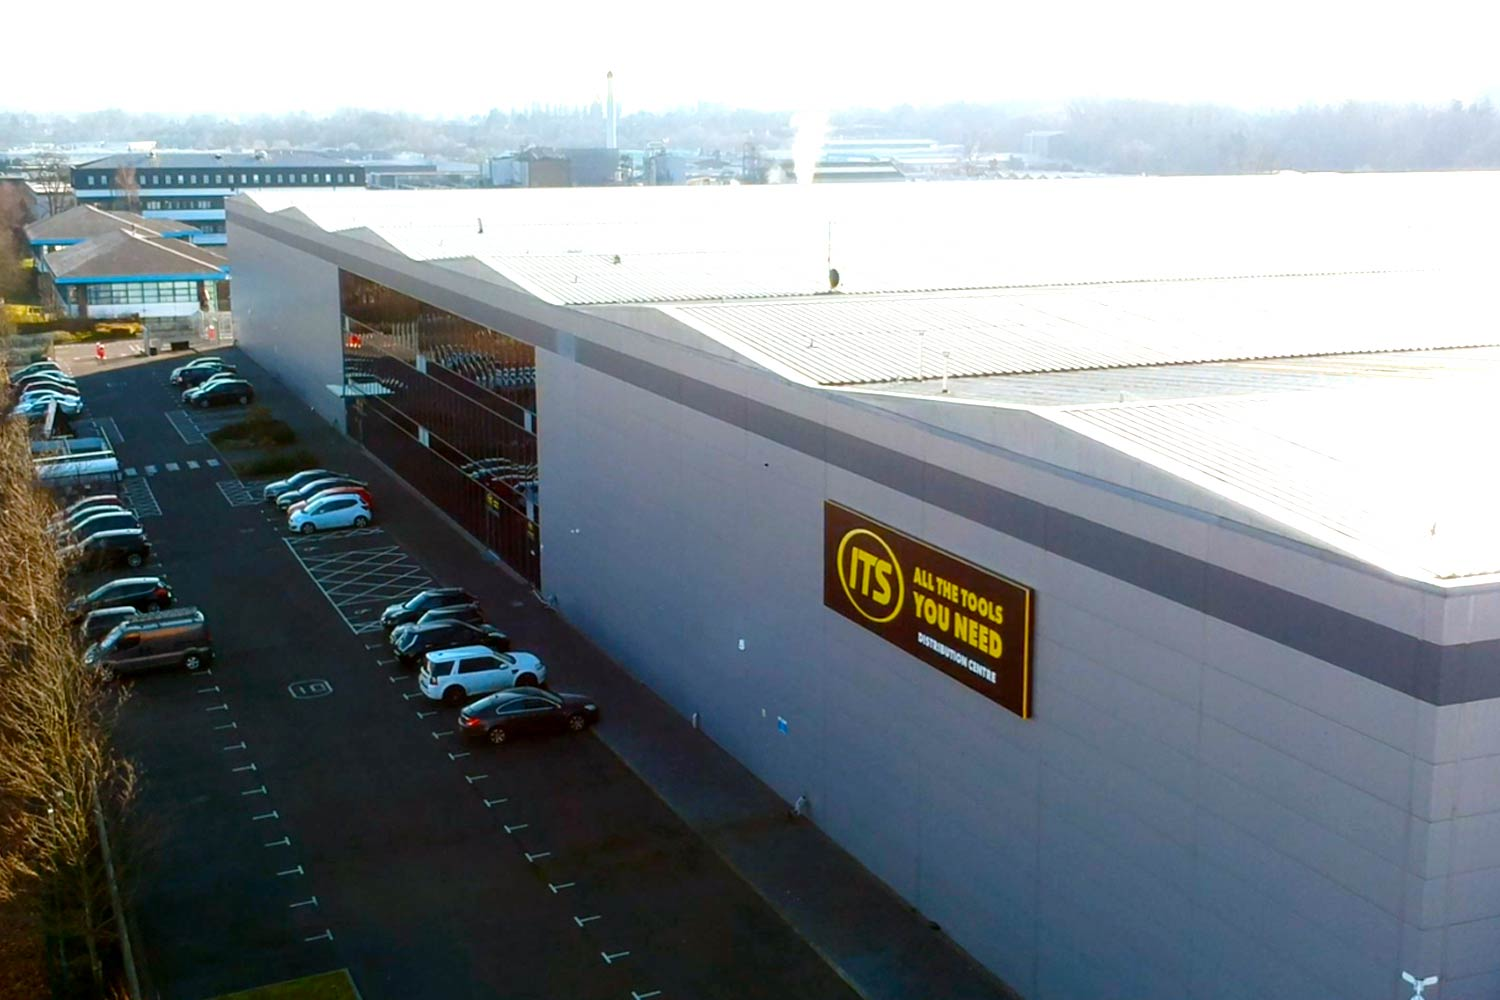 2018 - Head Office & Distribution Centre Moves to DC One Harlow